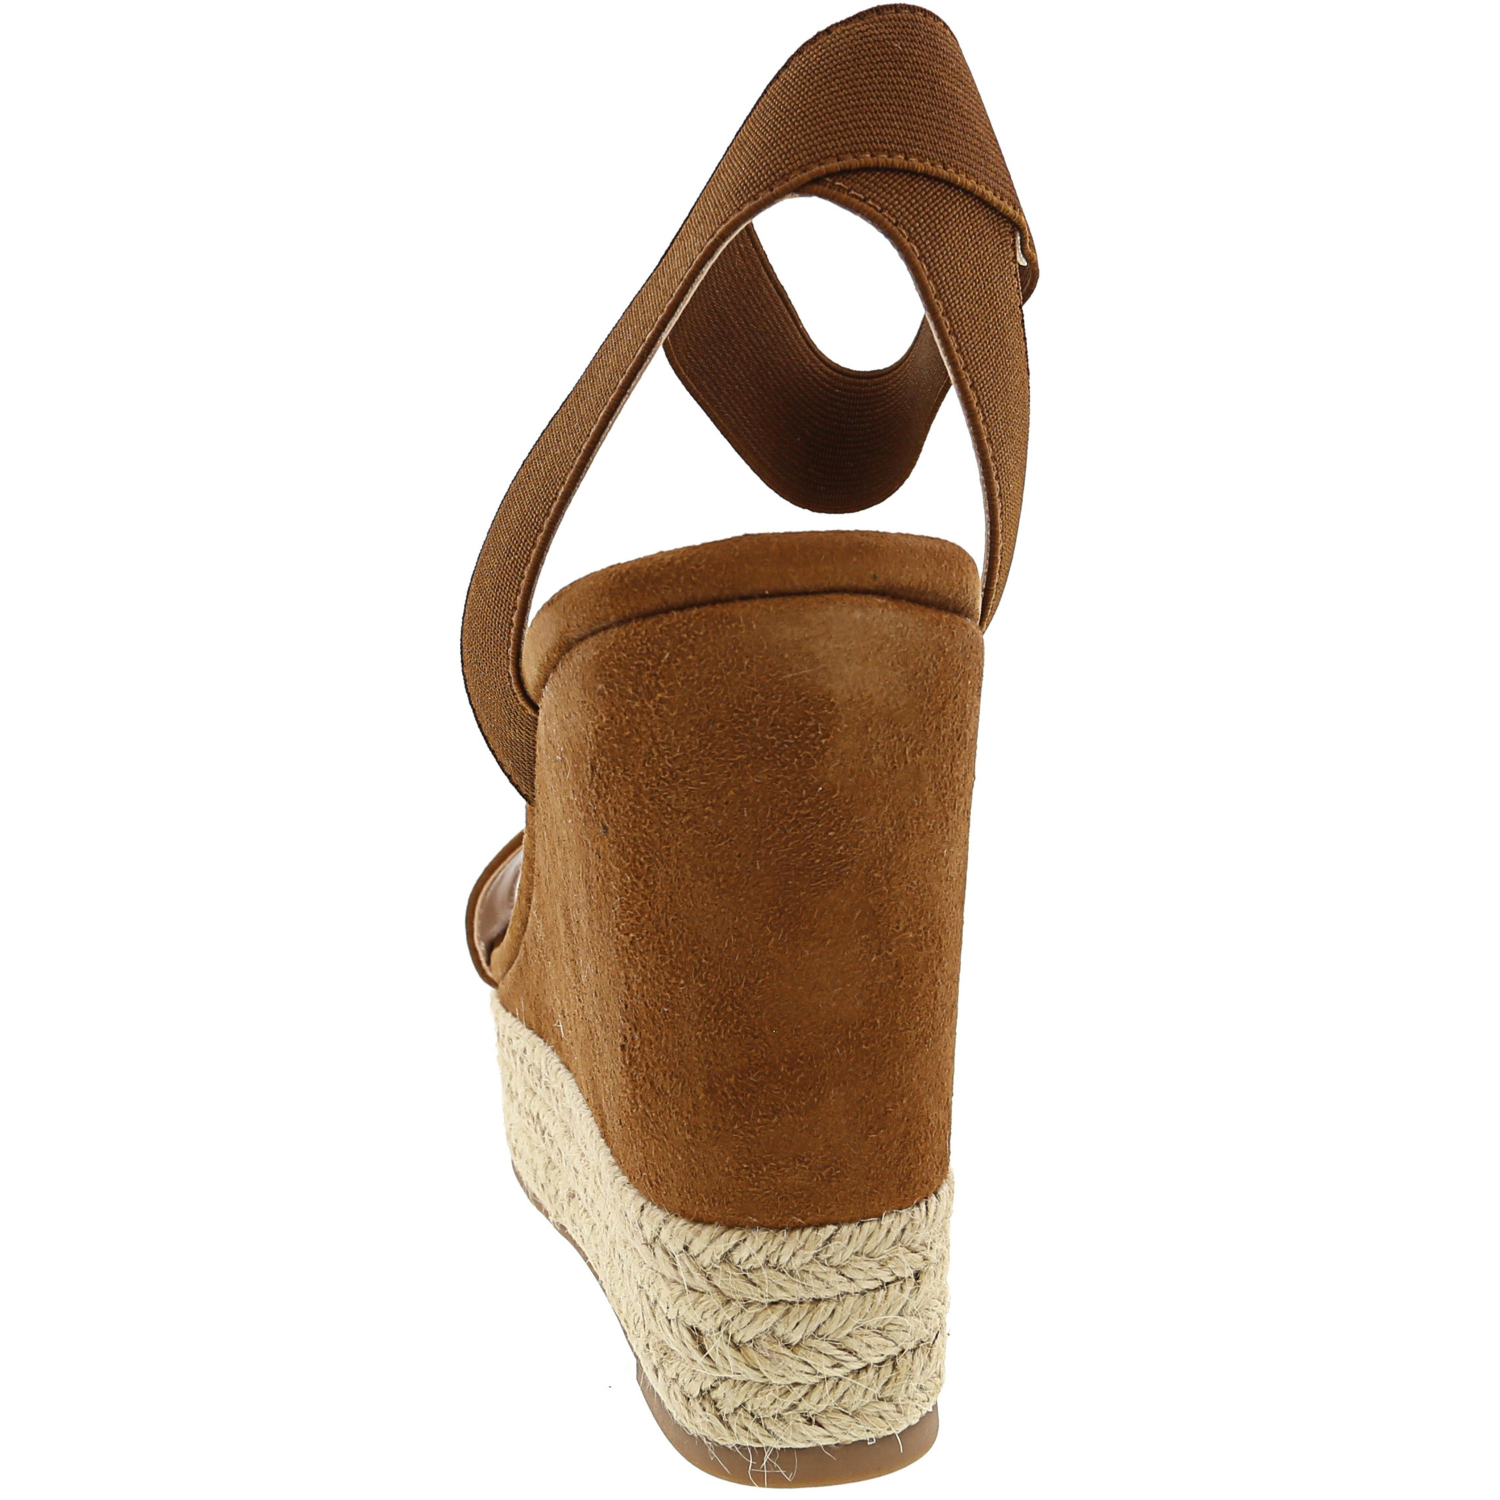 Steve-Madden-Women-039-s-Certified-Suede-Ankle-High-Wedged-Sandal thumbnail 9